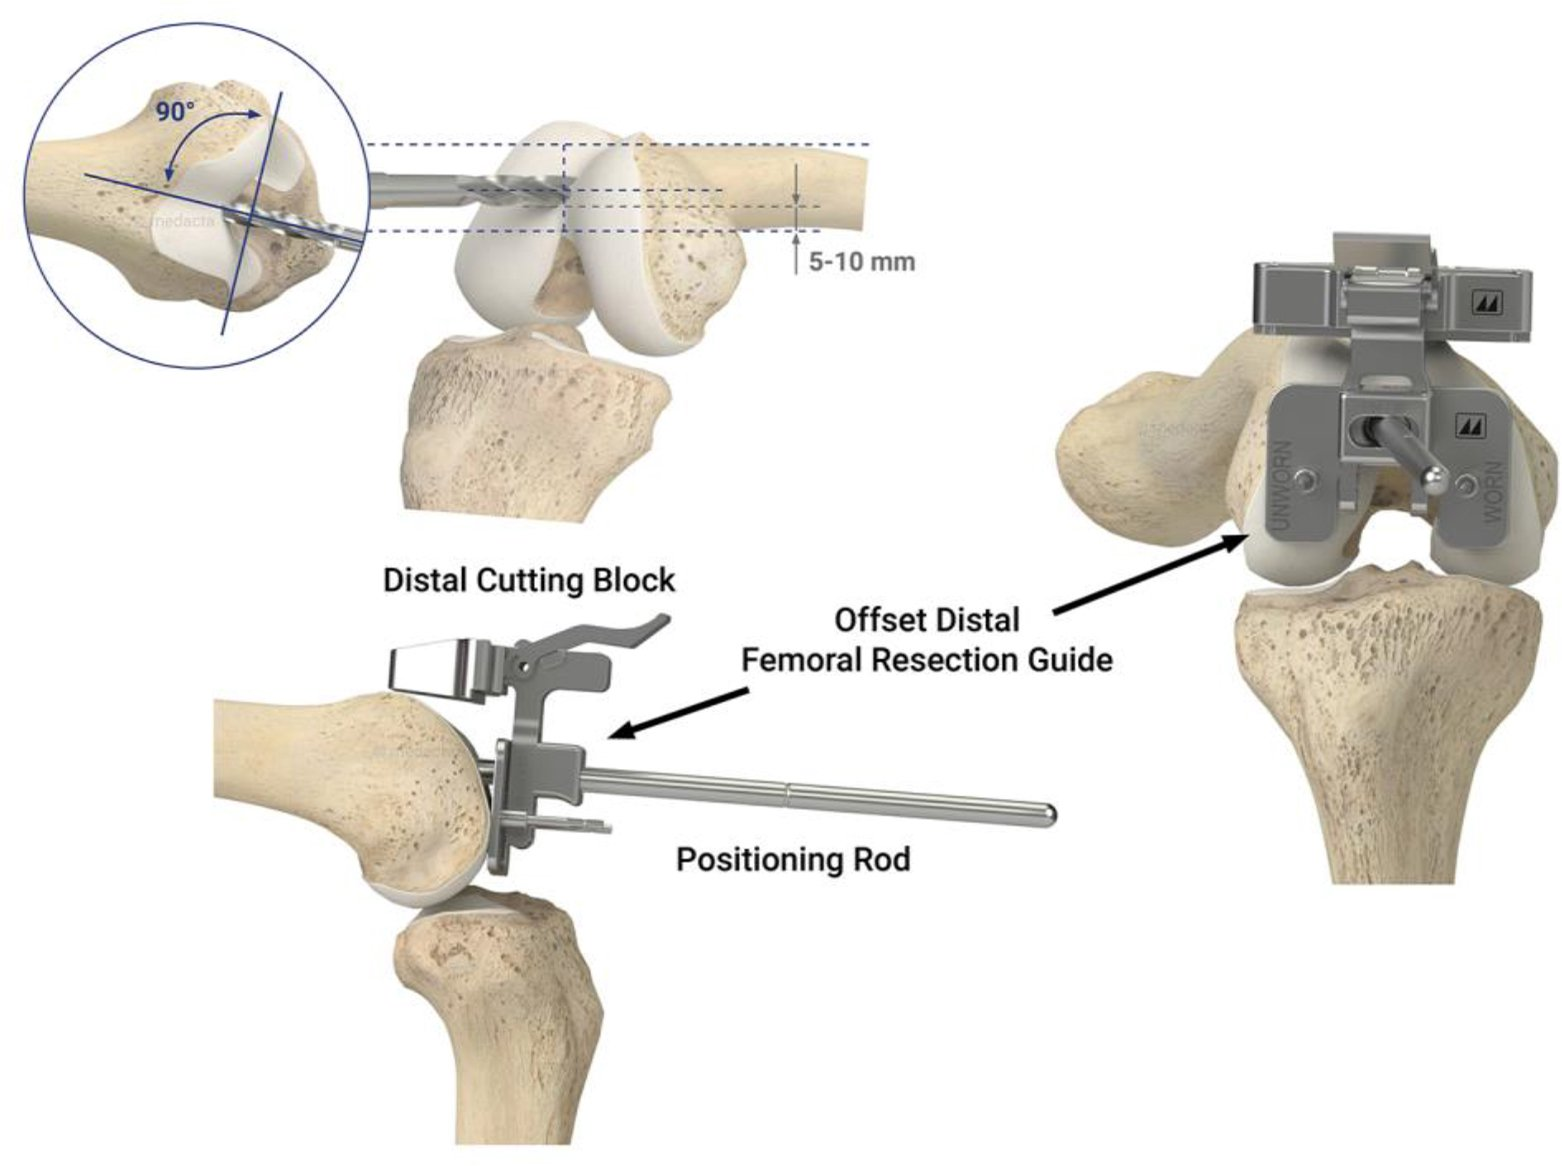 Schematic shows the method for limiting flexion of the femoral component that results in a negligible risk of patellofemoral instability44–46. Start the drill hole midway between the anterior limit of the notch and the anterior cortex of the femur (short blue dotted line). Orient the drill perpendicular to a plane coincident to the distal surface of the femur and parallel with the anterior cortex of the femur. A starting point that keeps a 5–10 mm bone bridge between the posterior rim of the drill hole and the top of the intercondylar notch limits flexion of the femoral component to within 1° ± 2° with respect to the anatomic axis of the distal femur45.